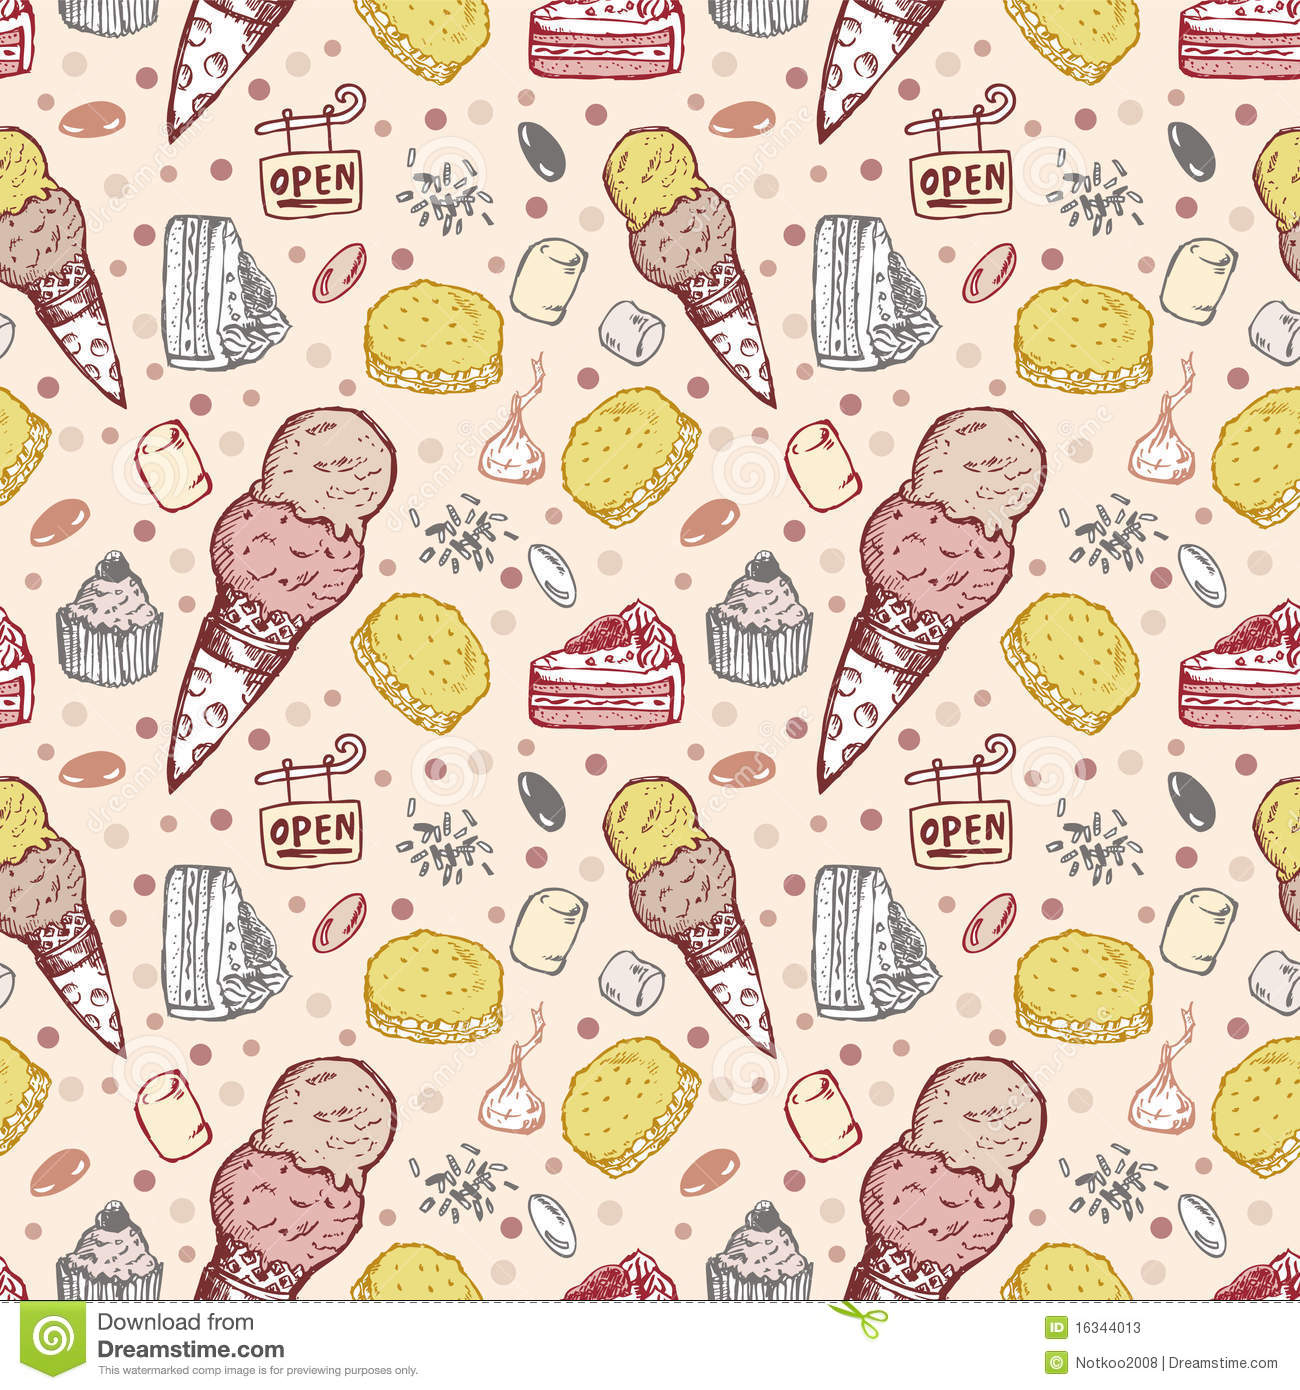 Sweet Ice Cream Flat Colorful Seamless Pattern Vector: Seamless Ice Cream Pattern Stock Vector. Illustration Of